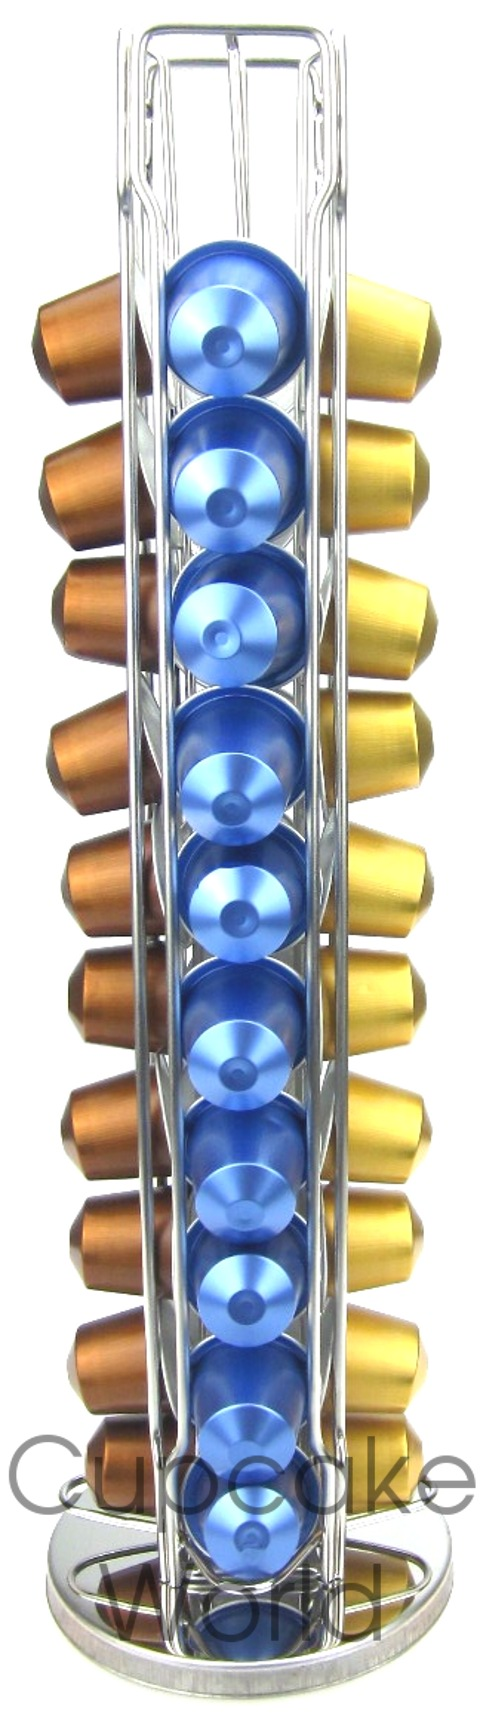 VERTICAL ROTATING COFFEE CAPSULE RACK STAND FOR 40 NESPRESSO POD